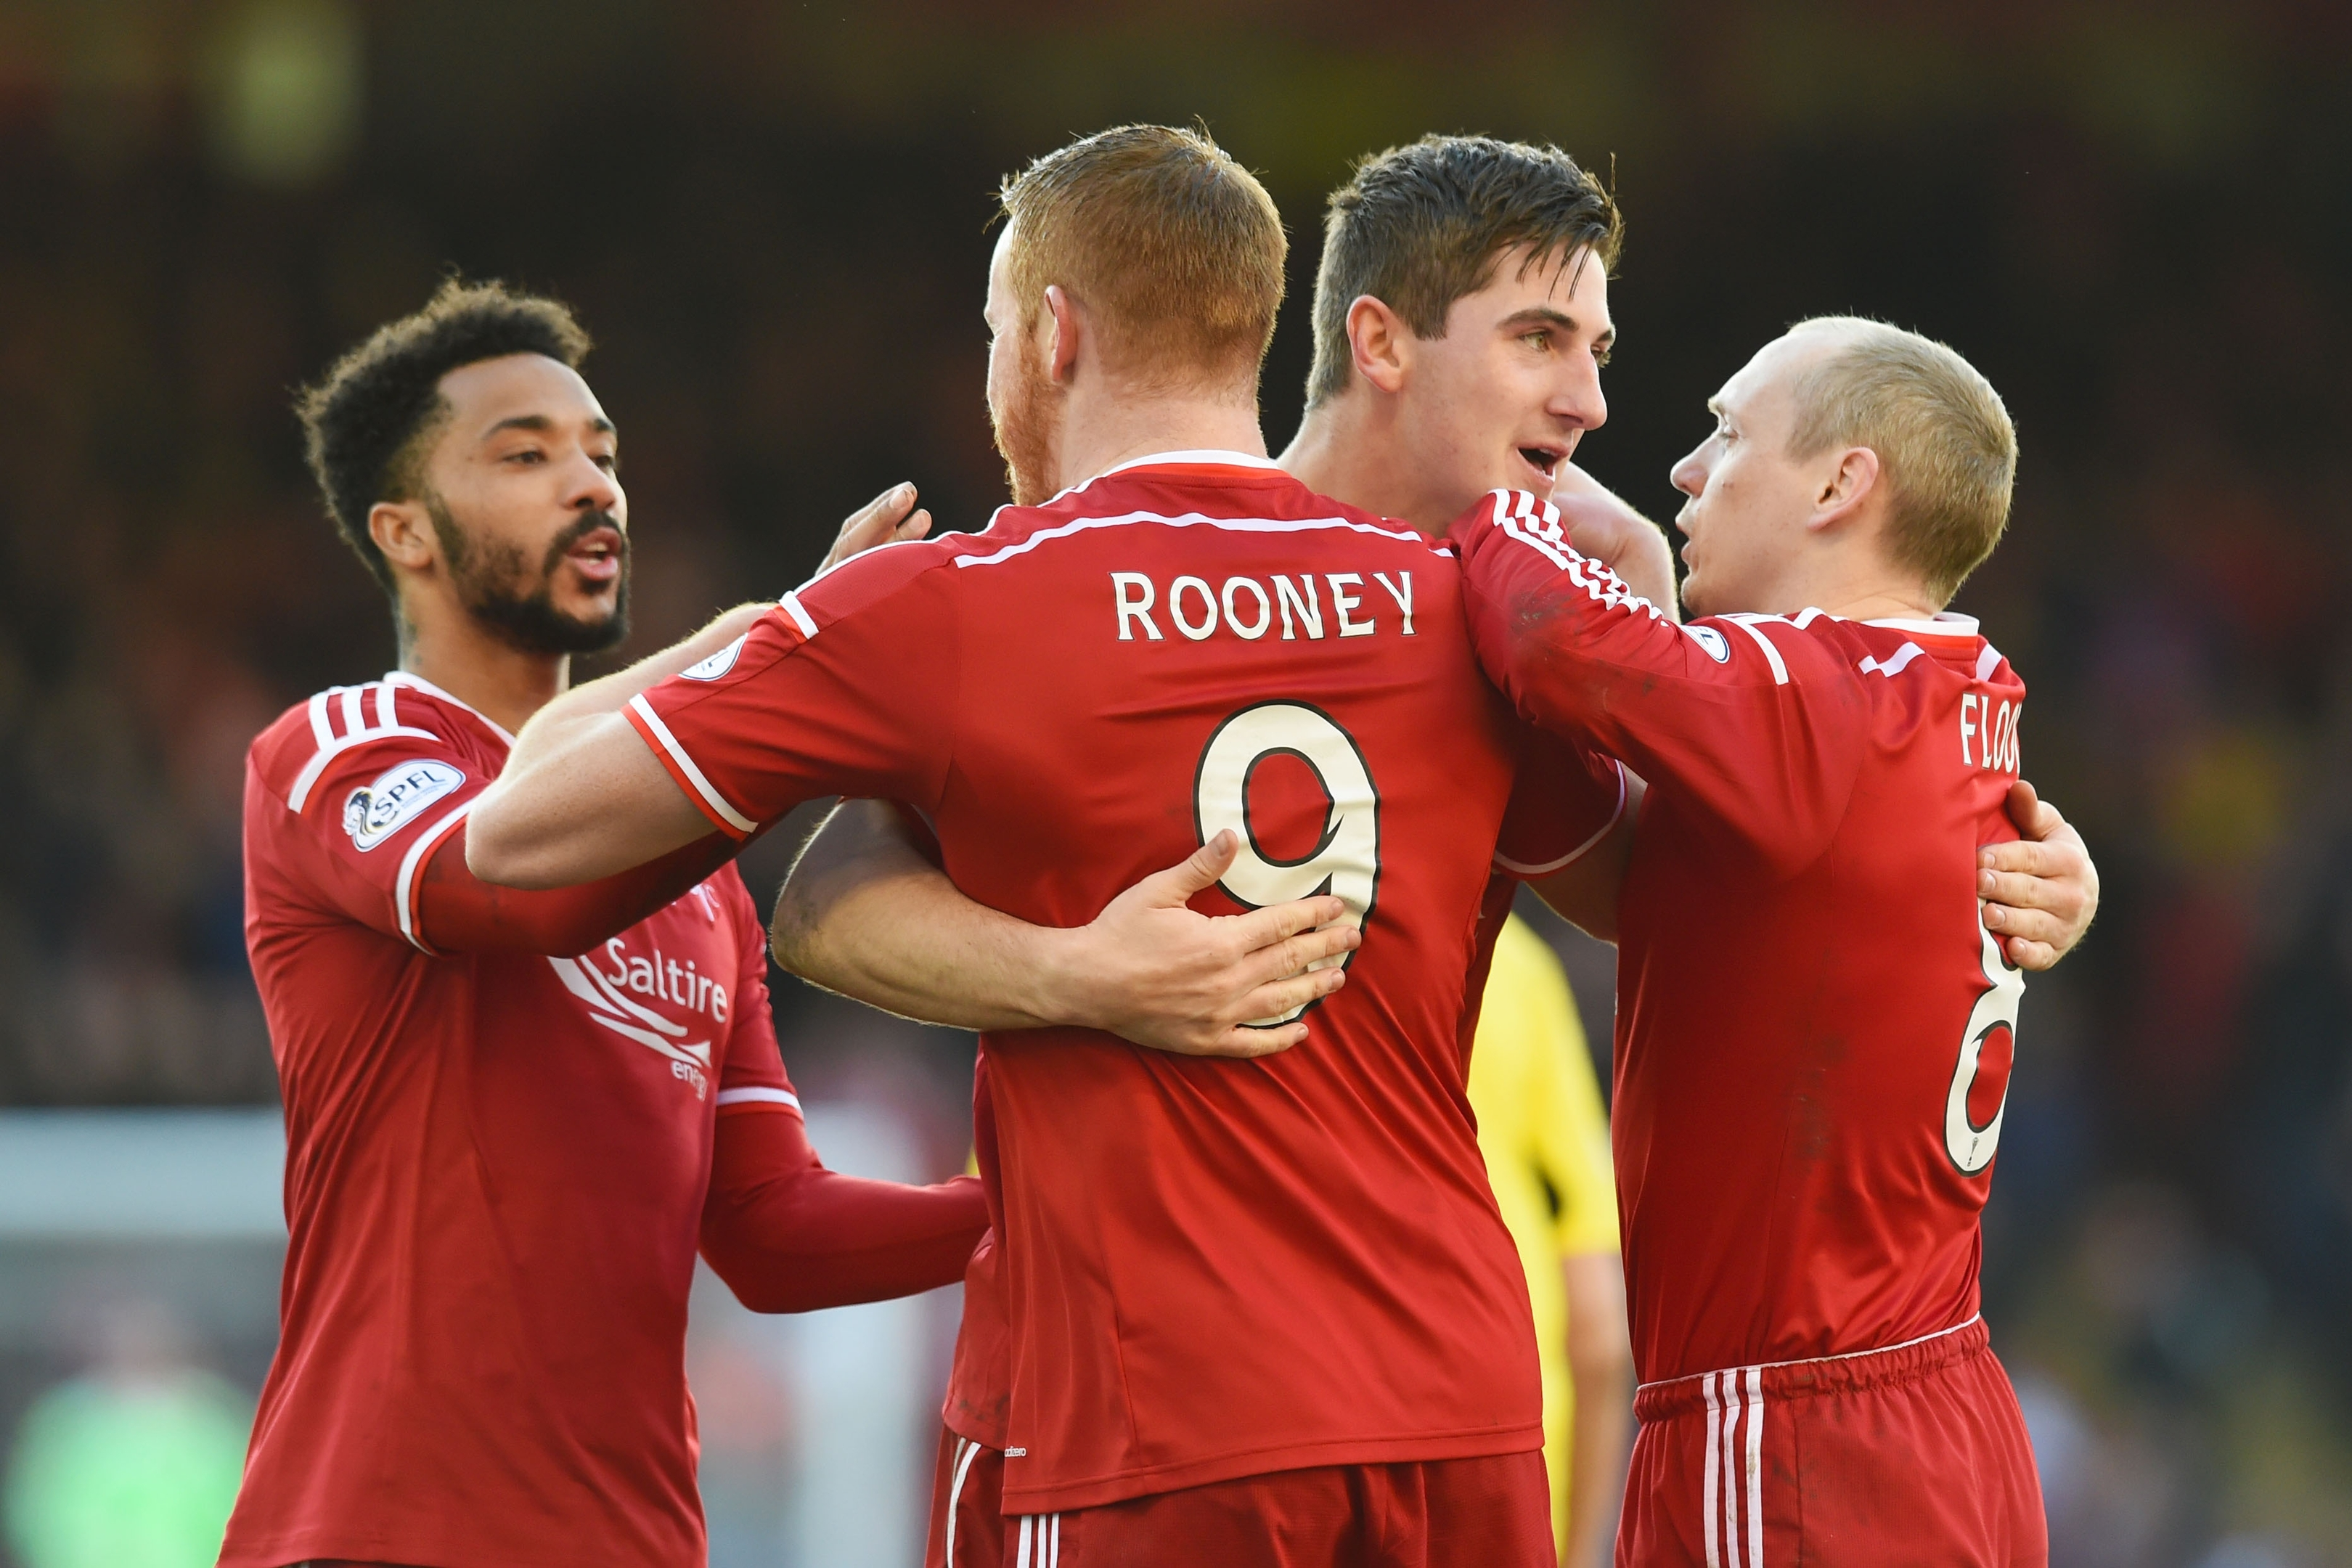 Aberdeen celebrate Rooney's second goal of the afternoon